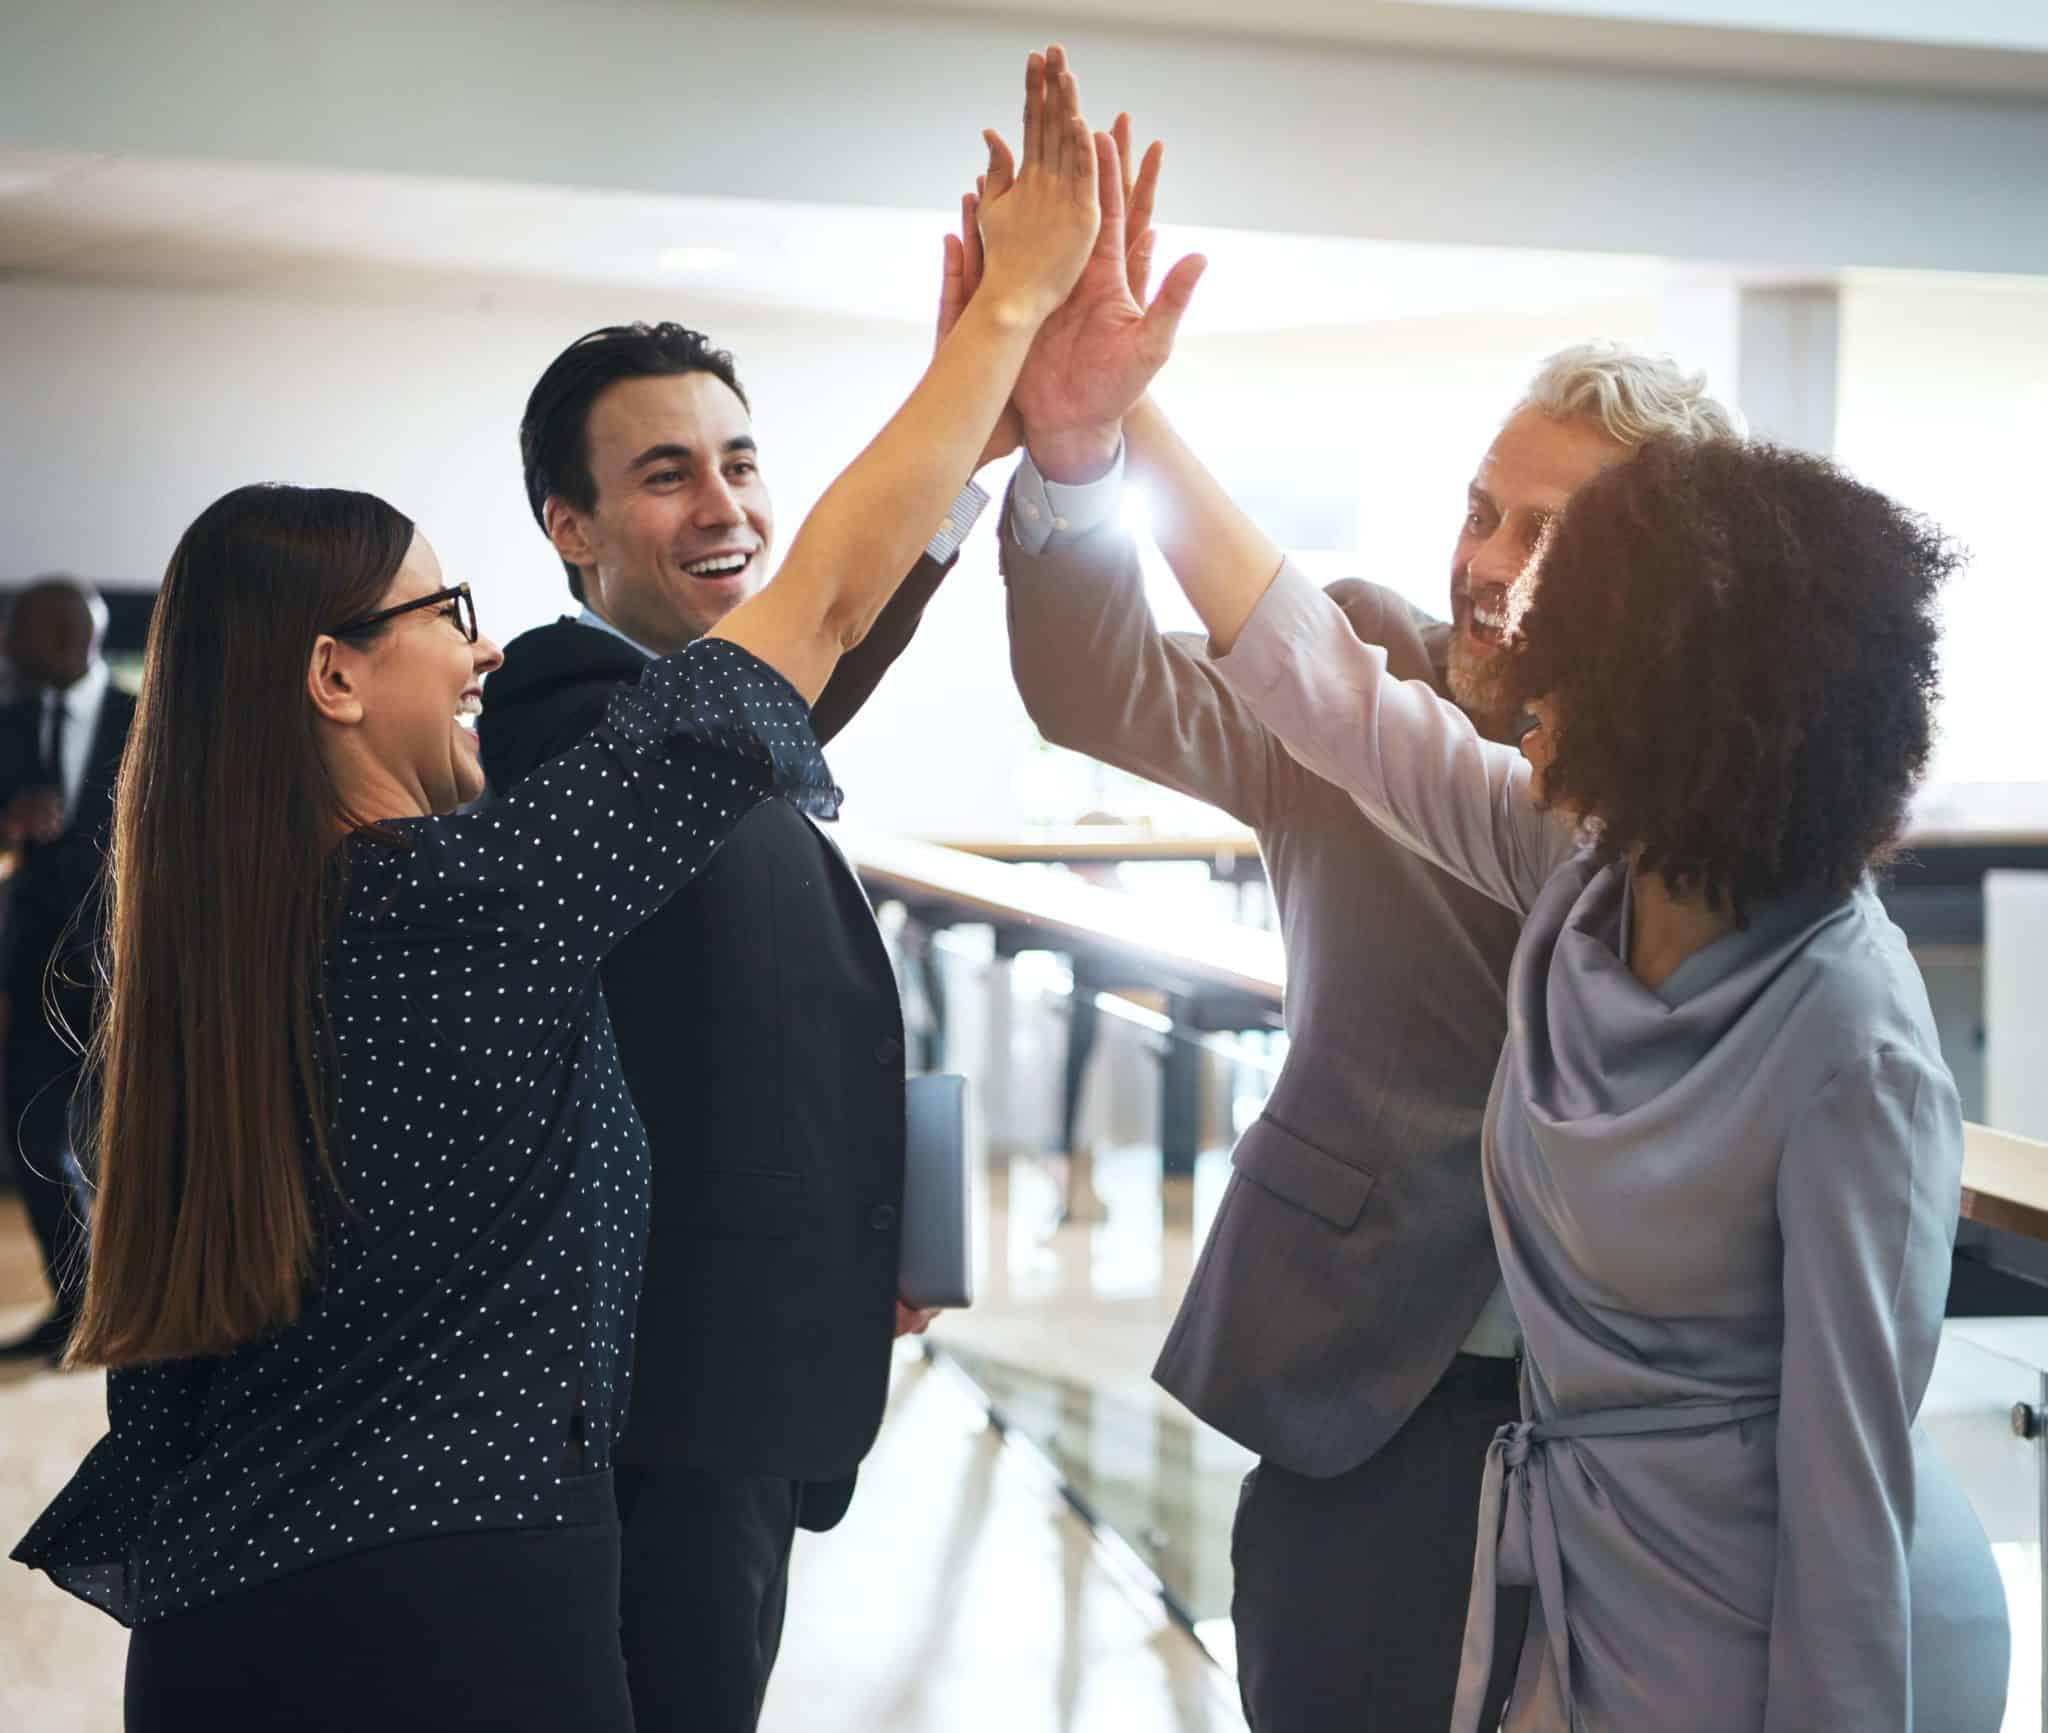 office team giving high five